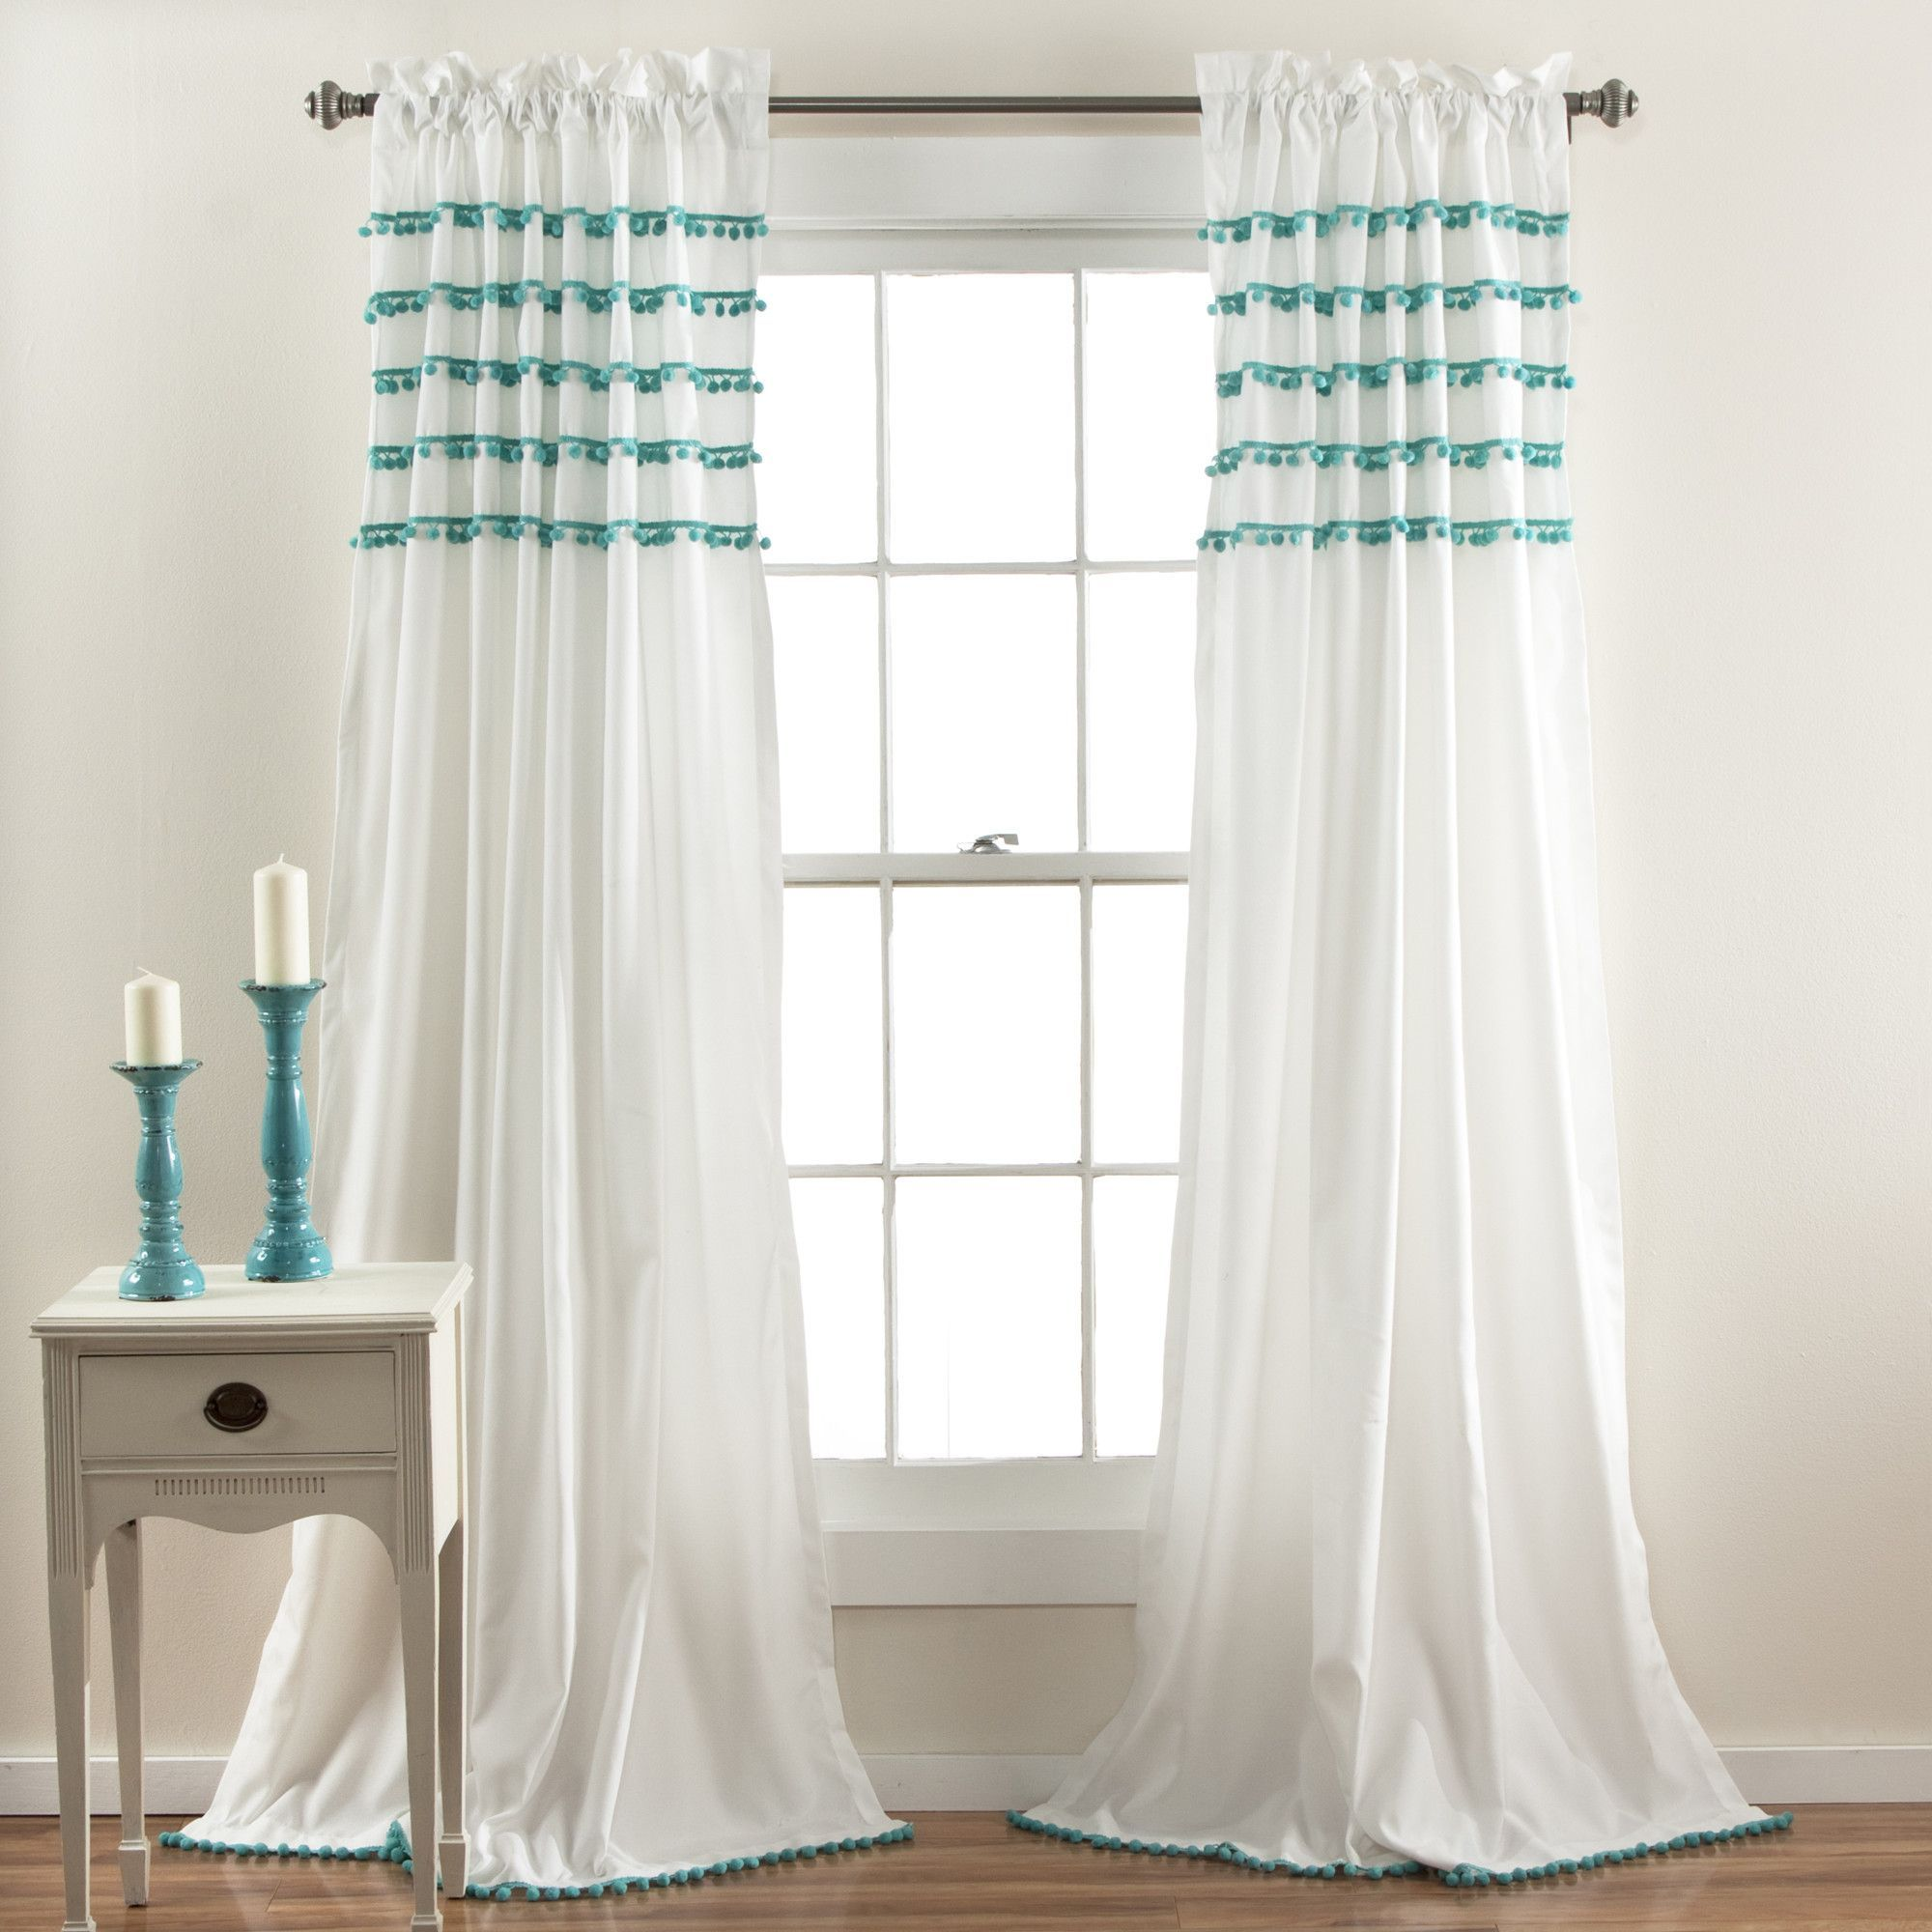 3 panel kitchen window  devin single curtain panel  products  pinterest  products